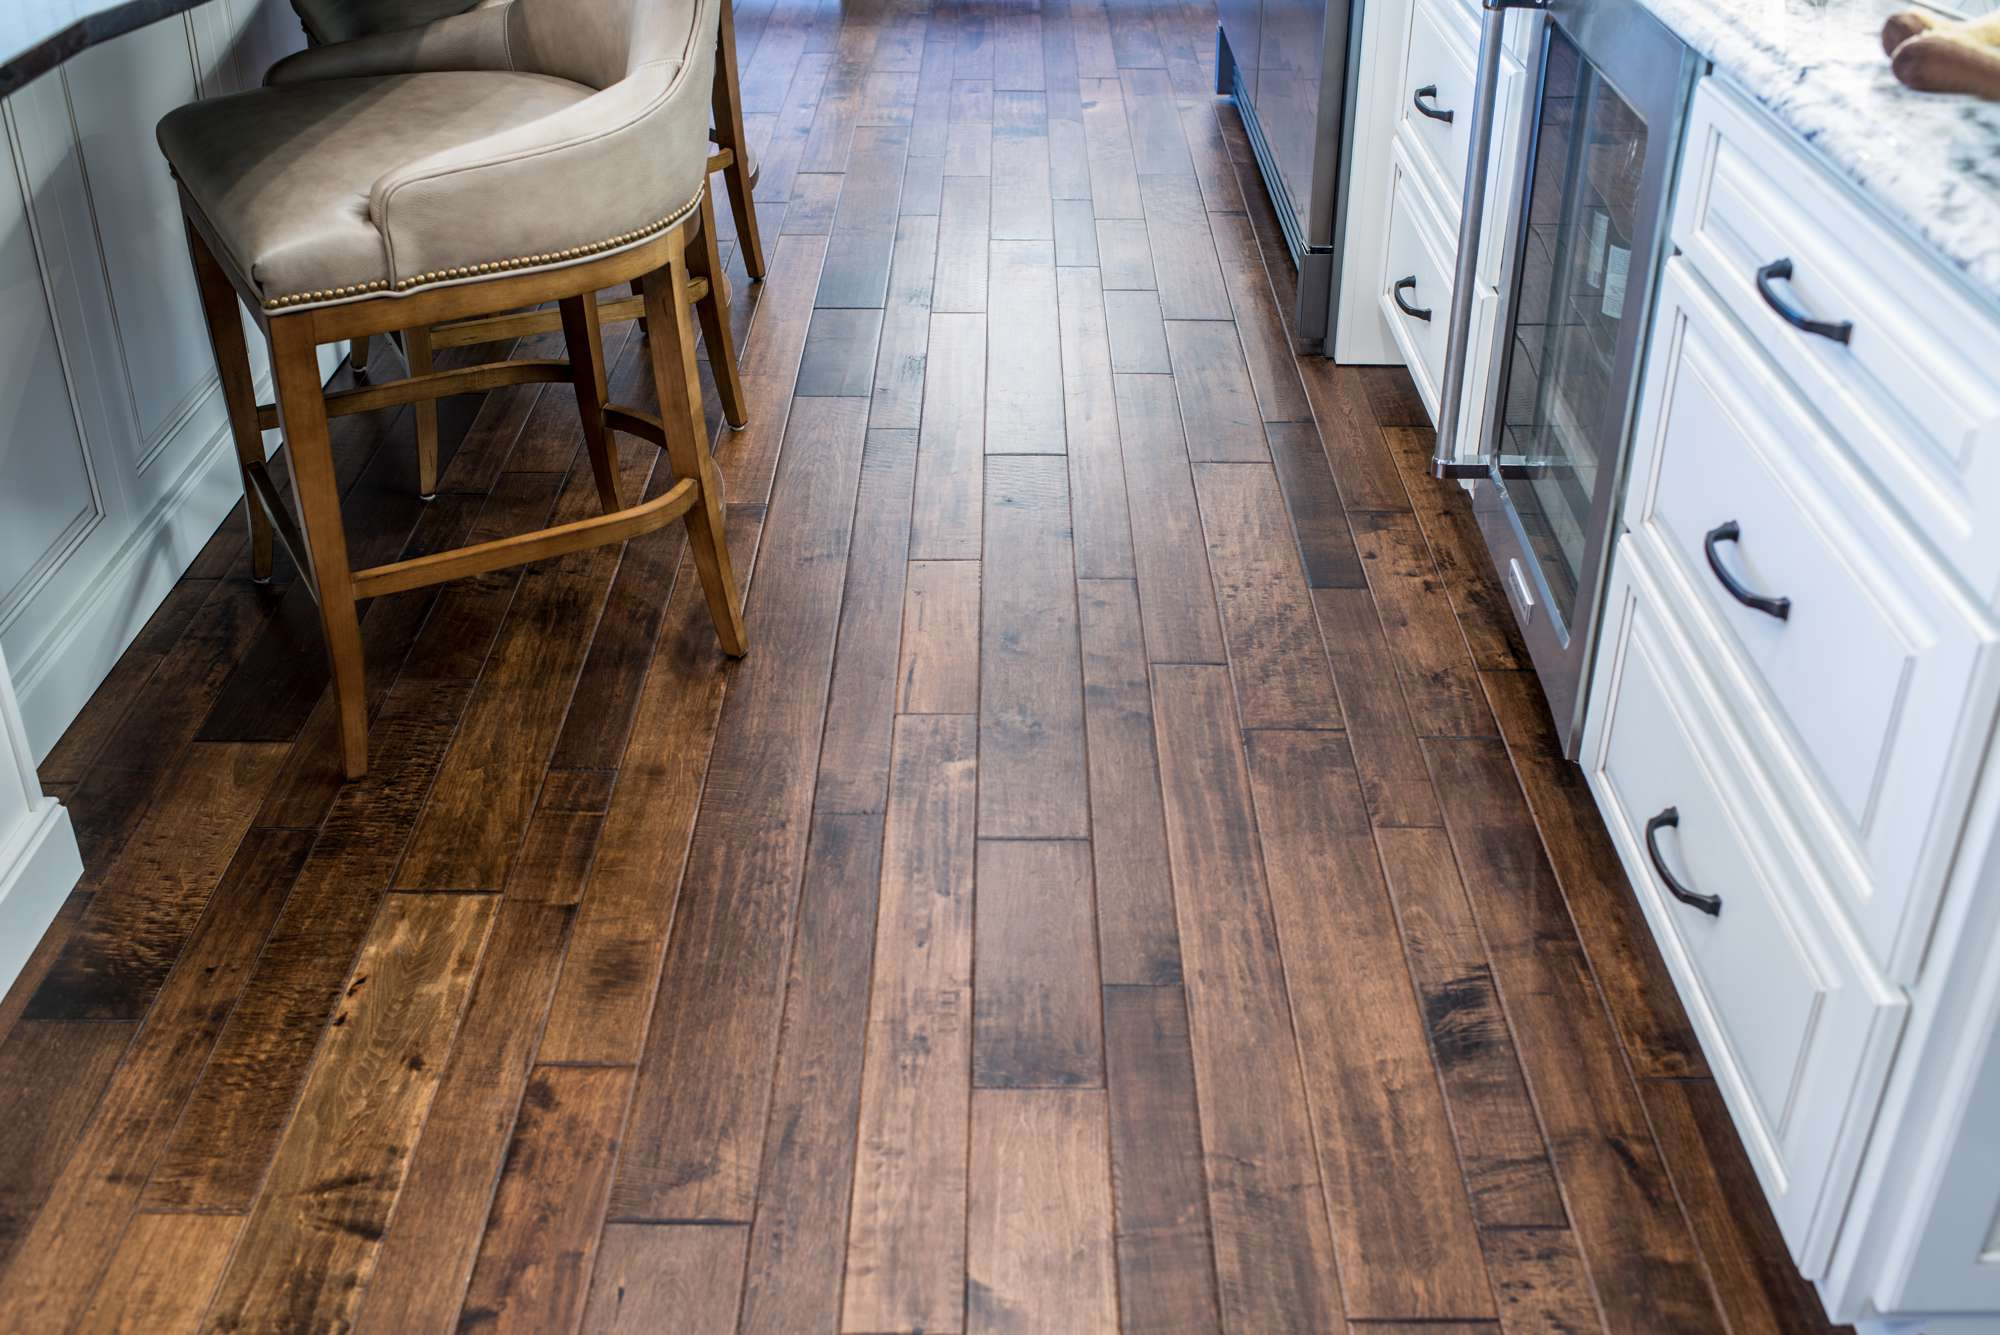 Hardwood flooring by Johnston Paint & Decorating in Columbia, MO.